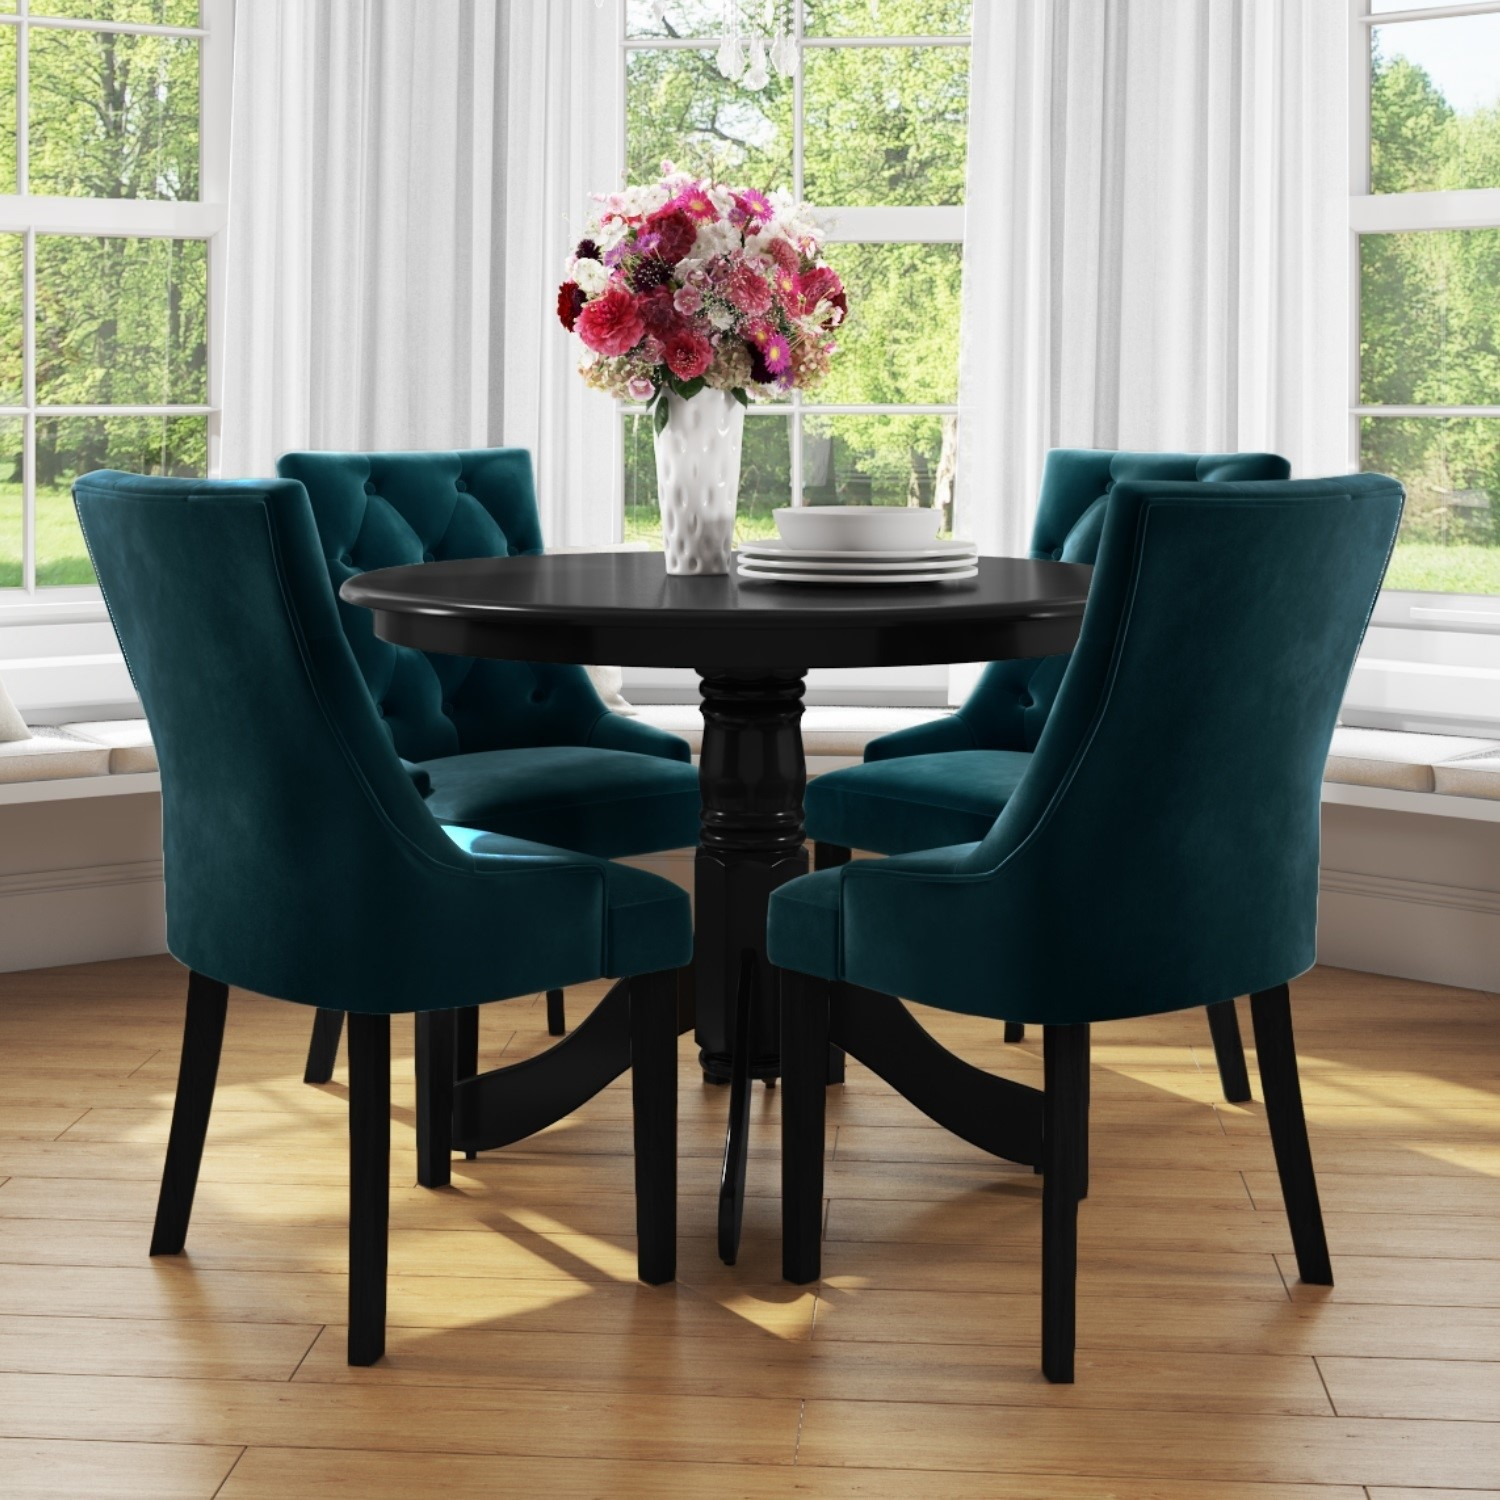 Small Round Dining Table In Black With 4 Teal Blue Velvet Chairs Rhode Island Kaylee Furniture123